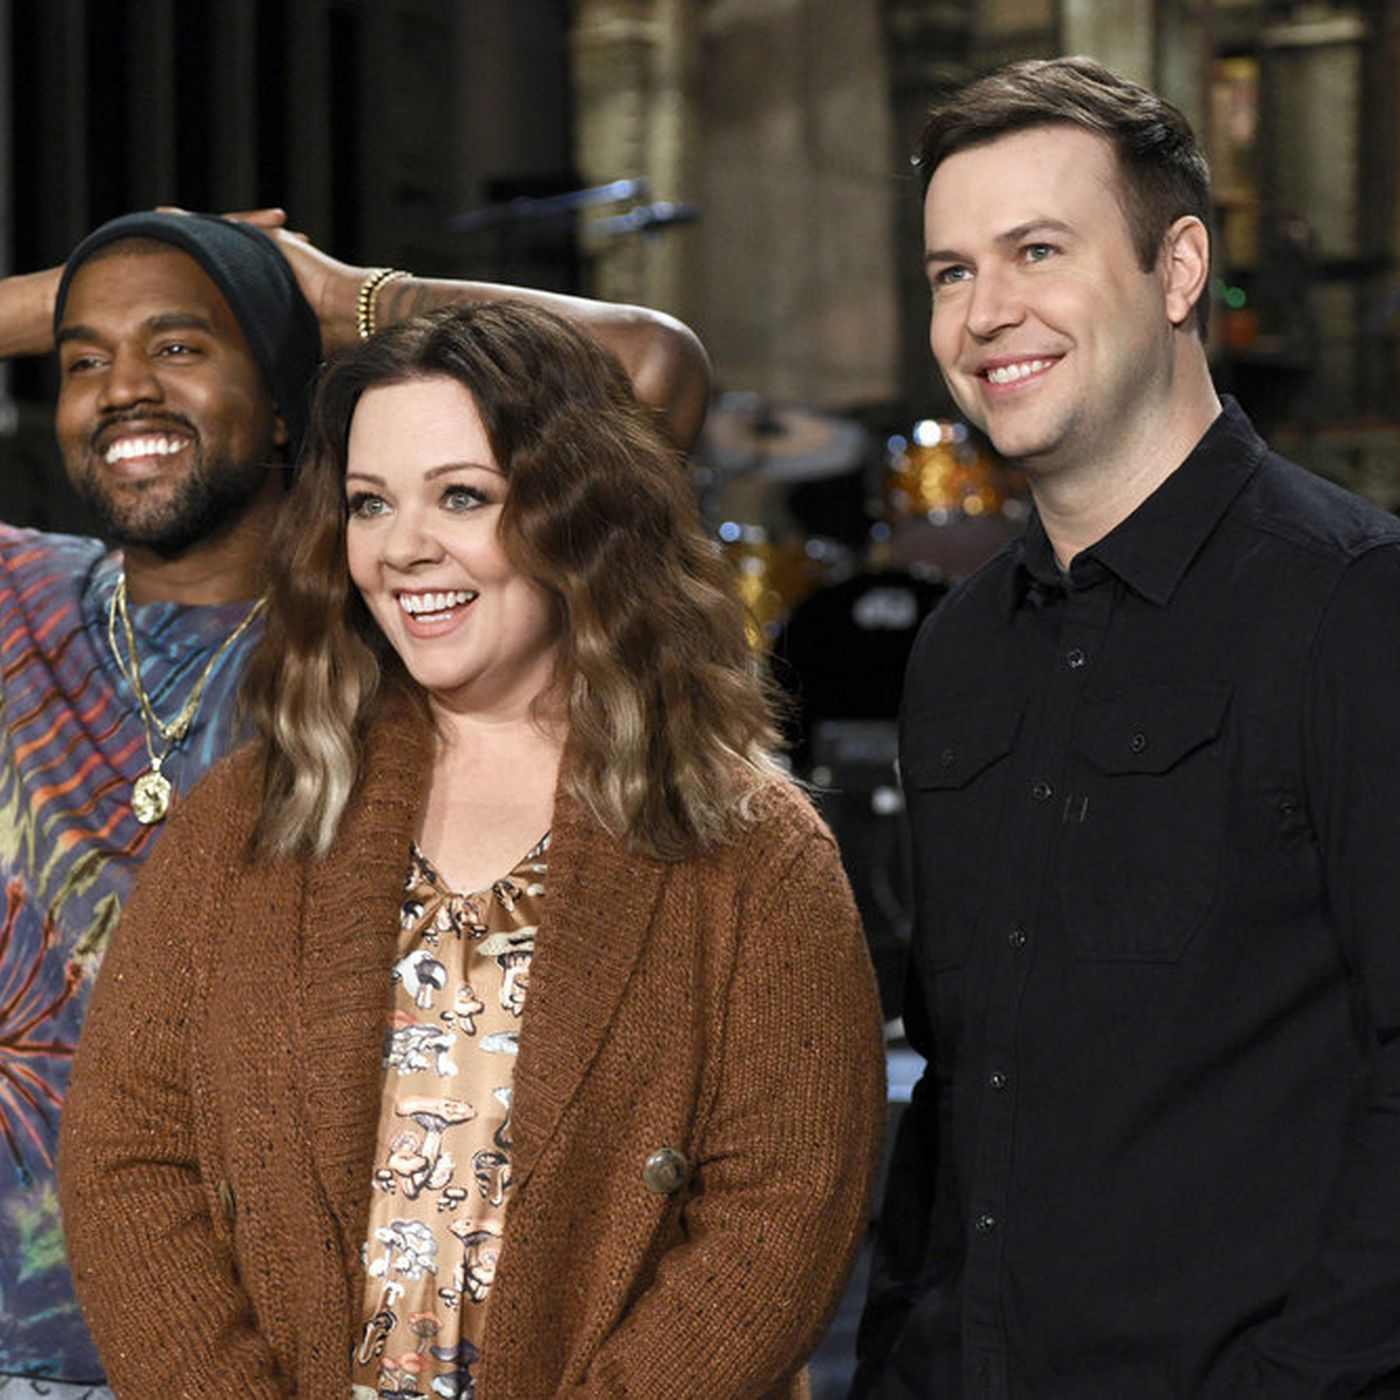 Was Kanye West S Saturday Night Live Performance A Success The Verge